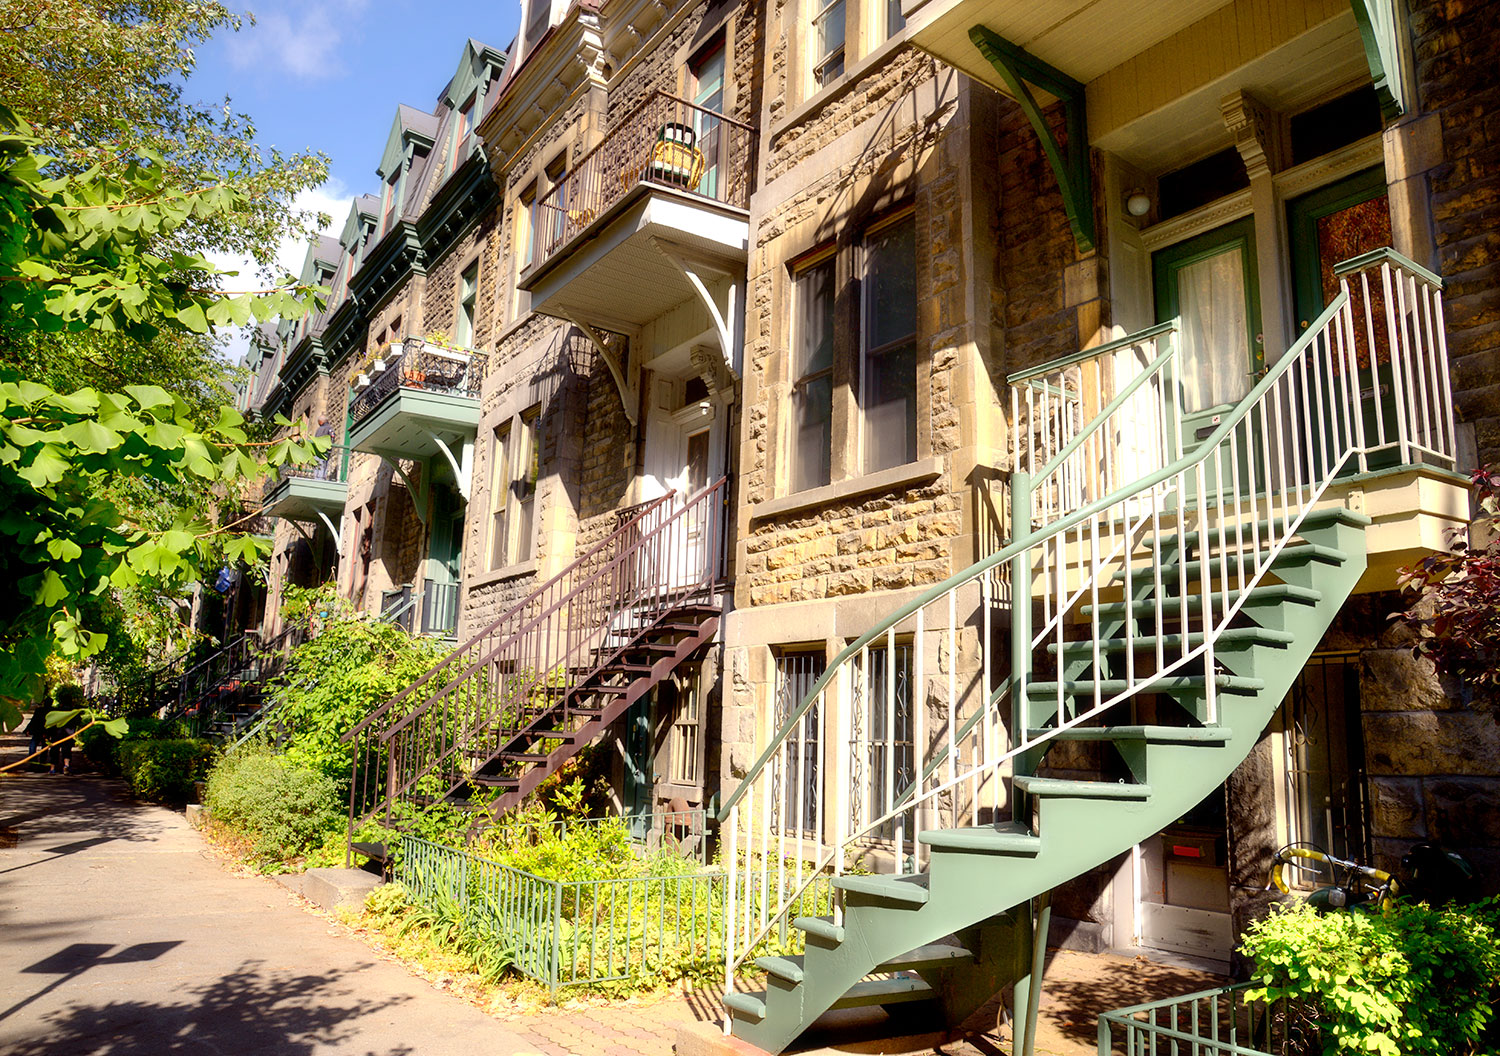 A row of houses in Montreal.